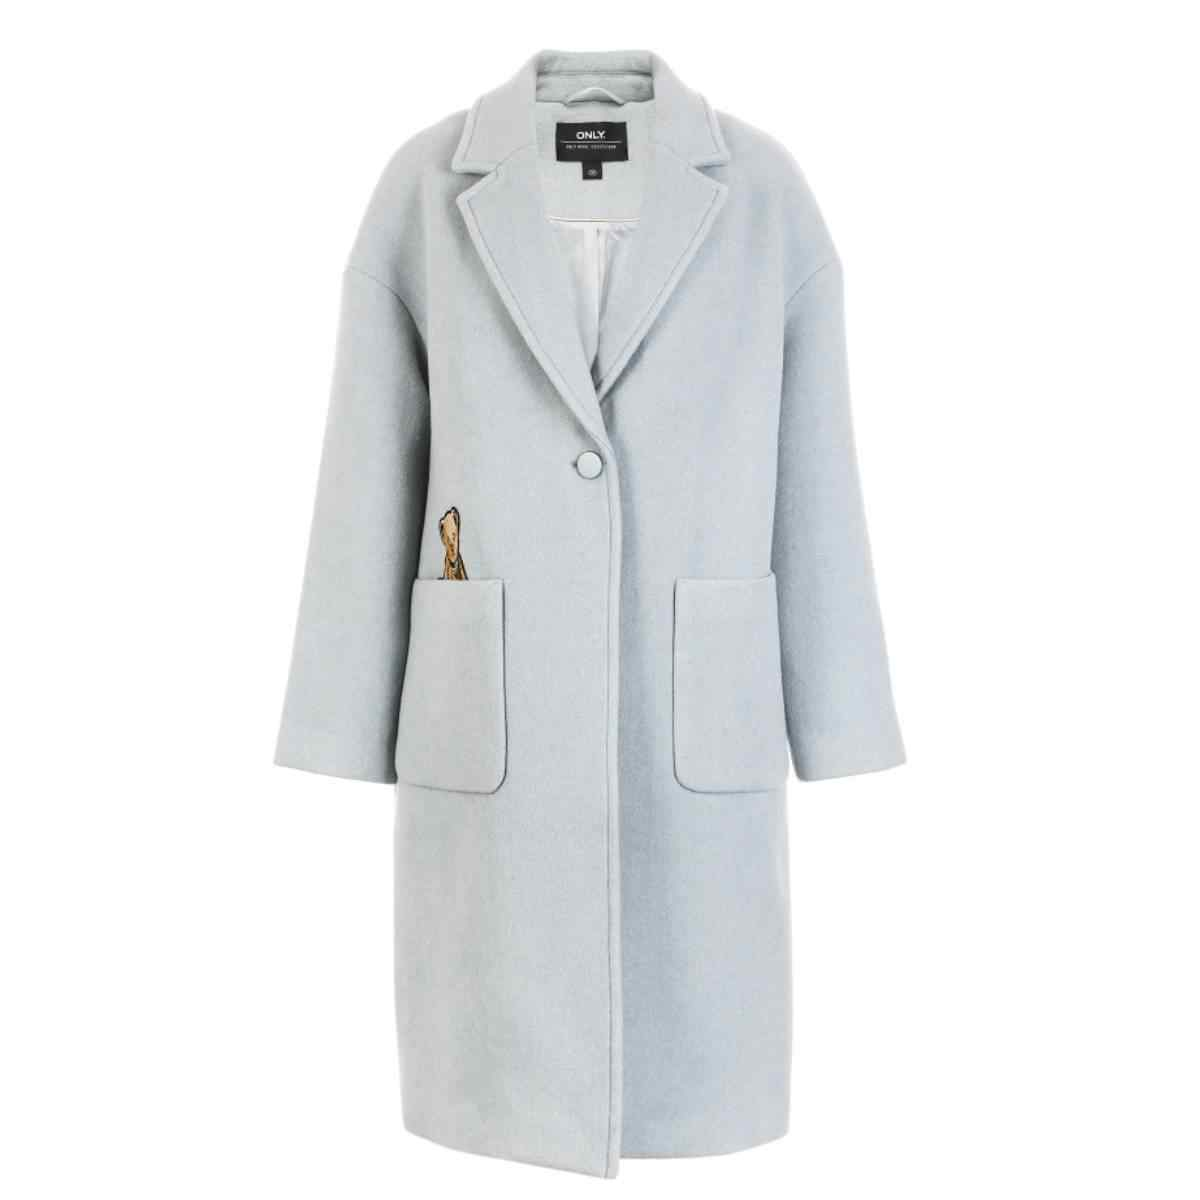 ONLY Women Straight Fit Embroidered Pocket One-button Wool Coat Overcoat| 11834S542